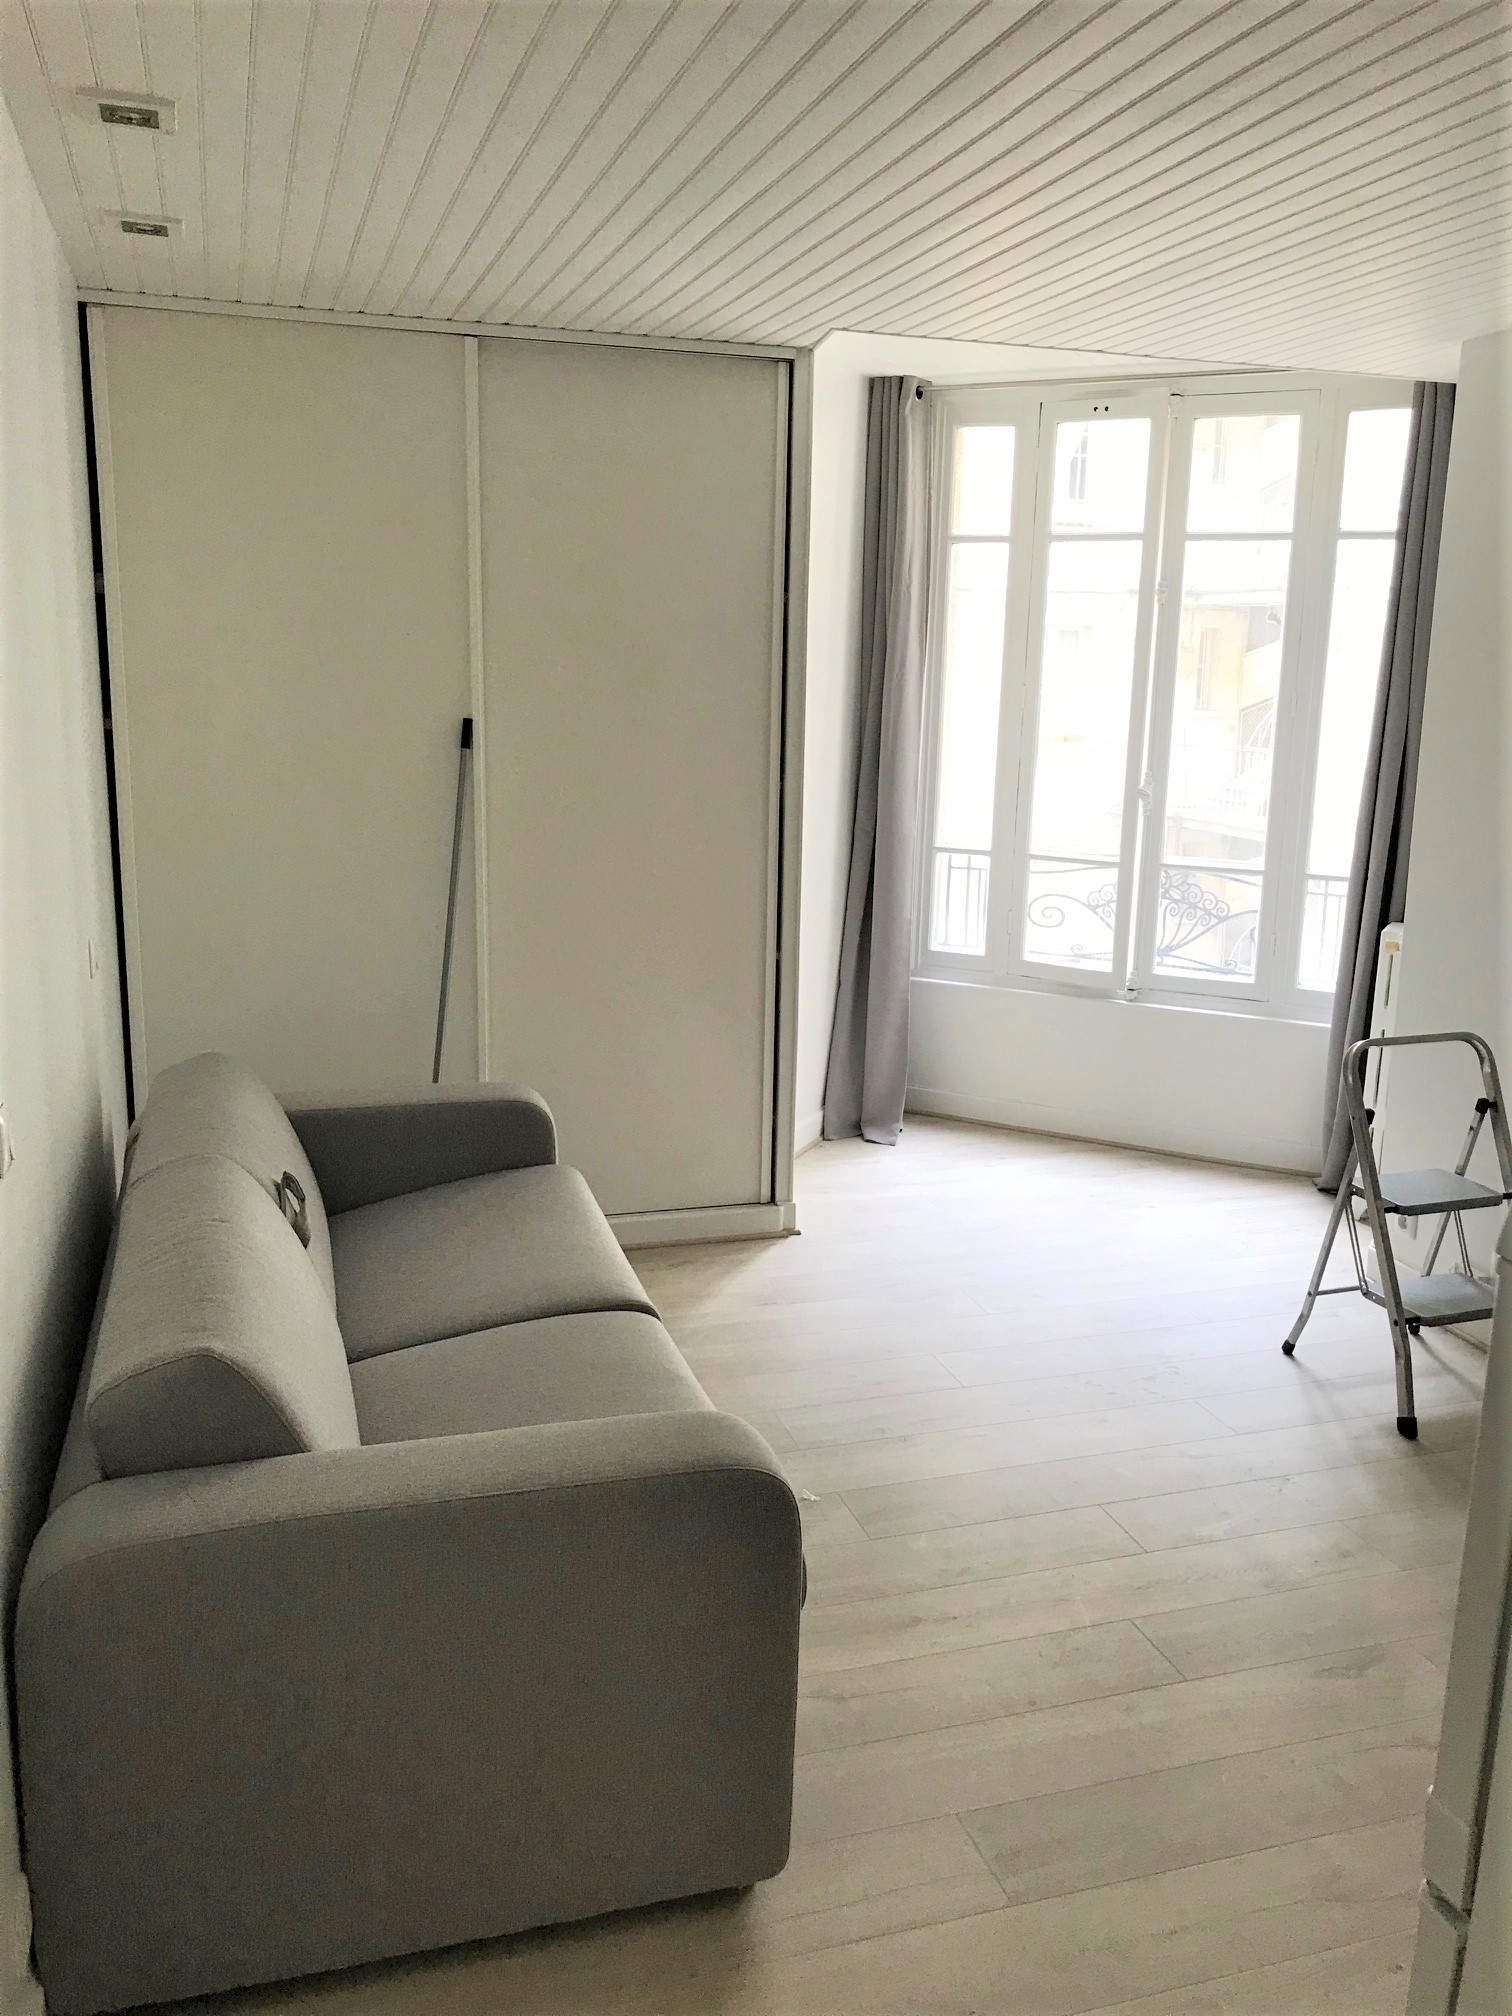 Offres de location Appartement Paris (75011)